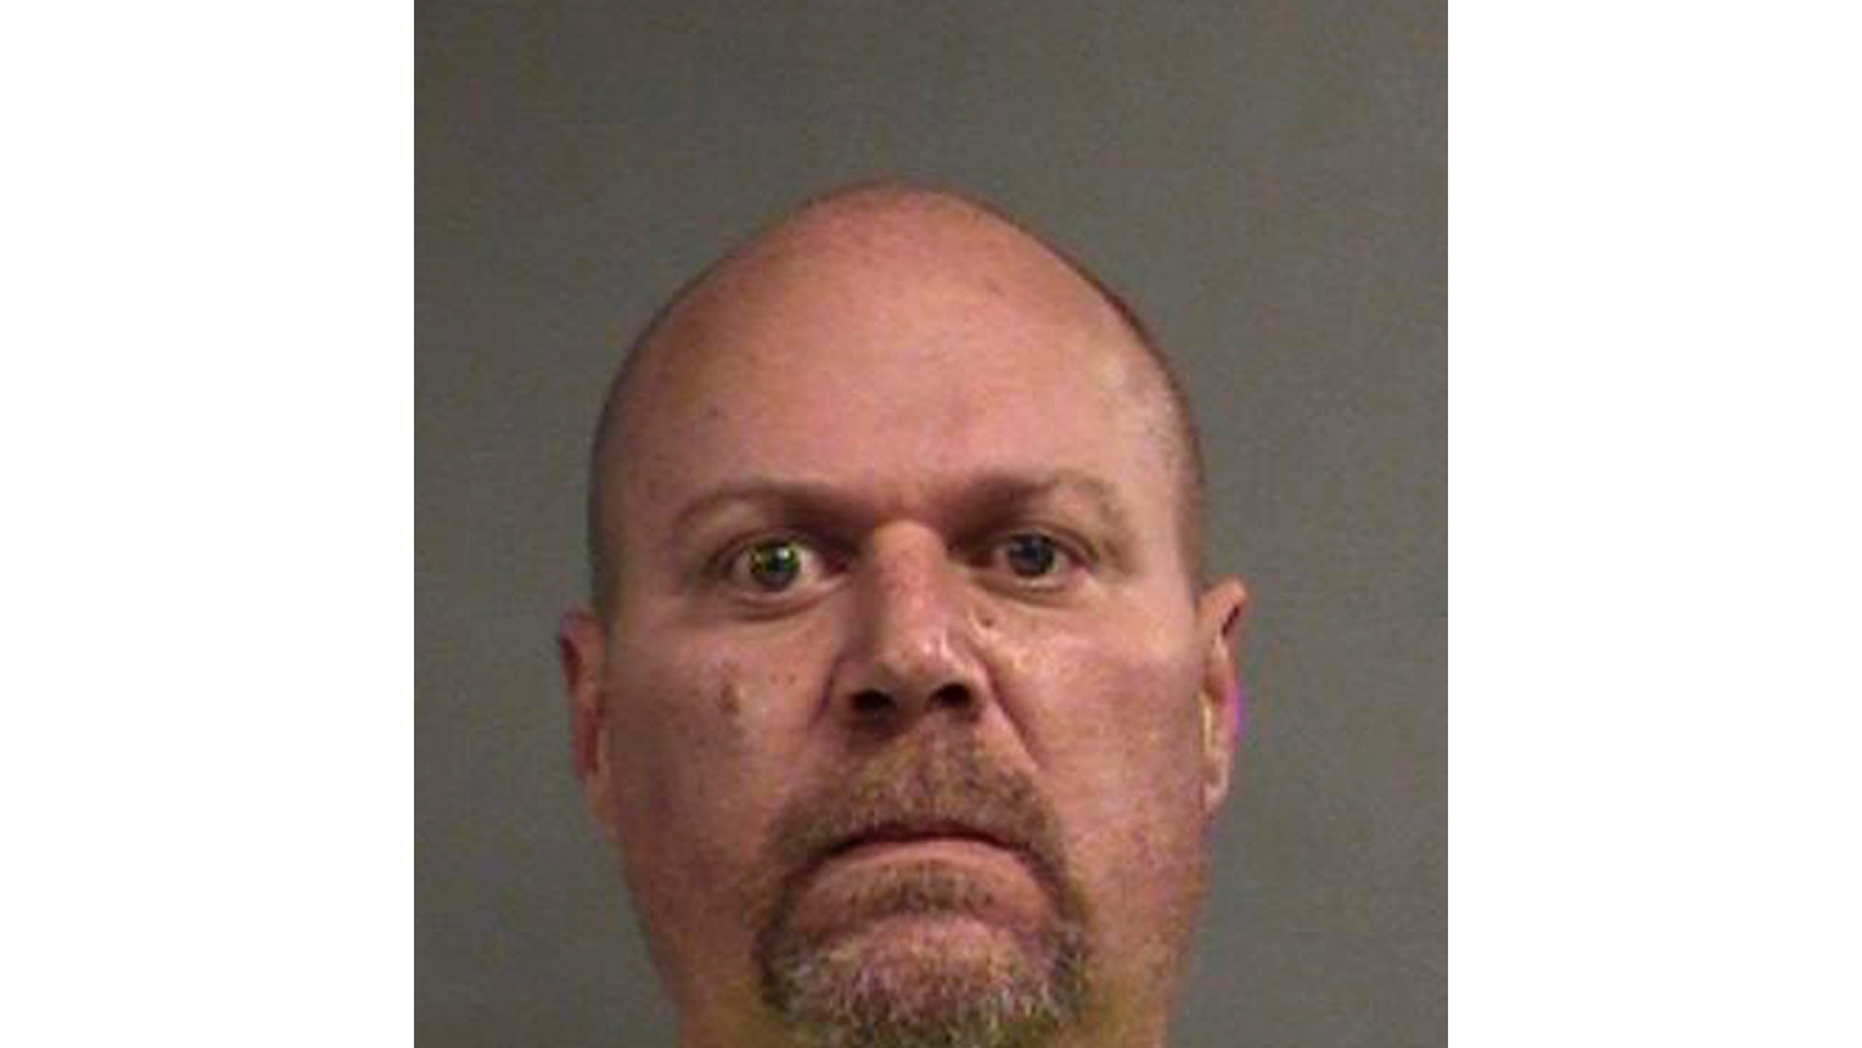 This photo provided by Louisville Metro Department of Corrections shows Gregory Alan Bush, who was booked early Thursday, Oct. 25, 2018, on two counts of murder and 10 counts of felony wanton endangerment, according to Louisville Metro Detention Center records. (Louisville Metro Department of Corrections via AP)